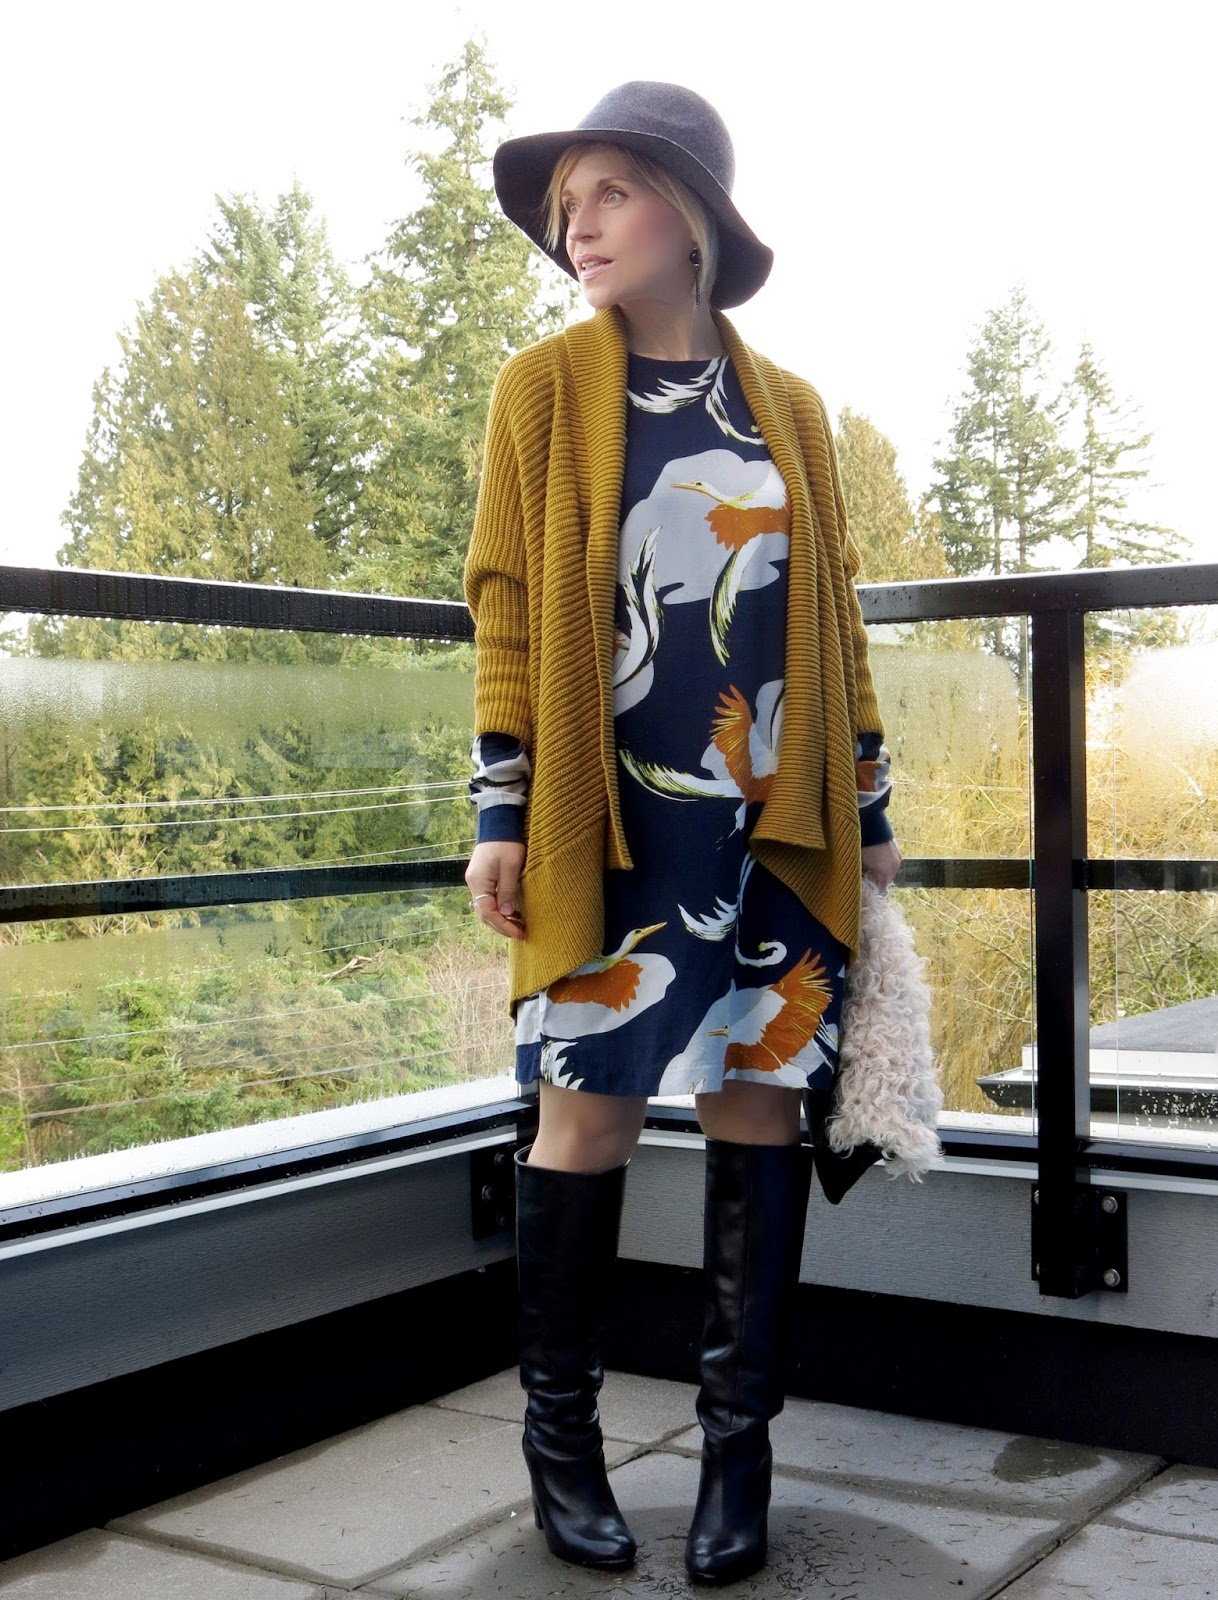 Sparks:  printed dress, drapey cardigan, knee boots, and floppy hat